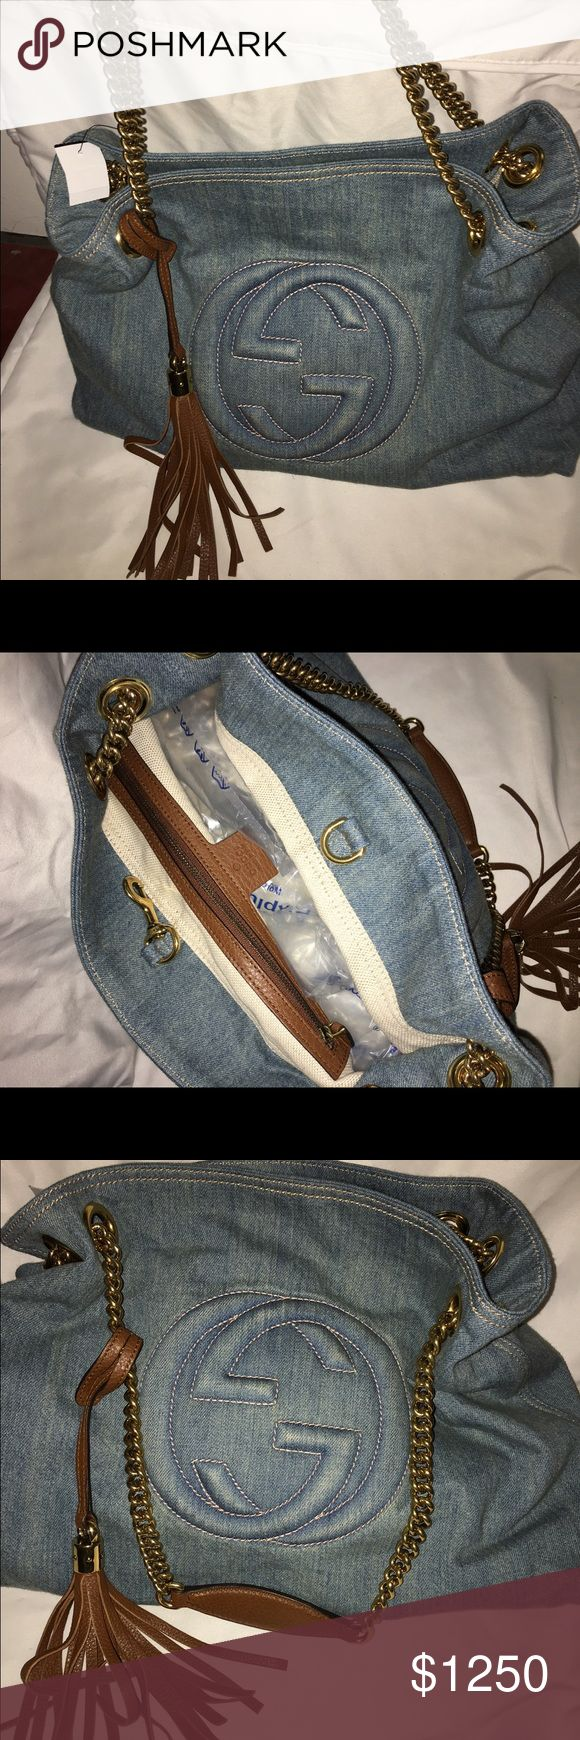 Gucci bag Gucci Soho denim medium chain bag never been used, still has price tag + bag to store it in Gucci Bags Shoulder Bags